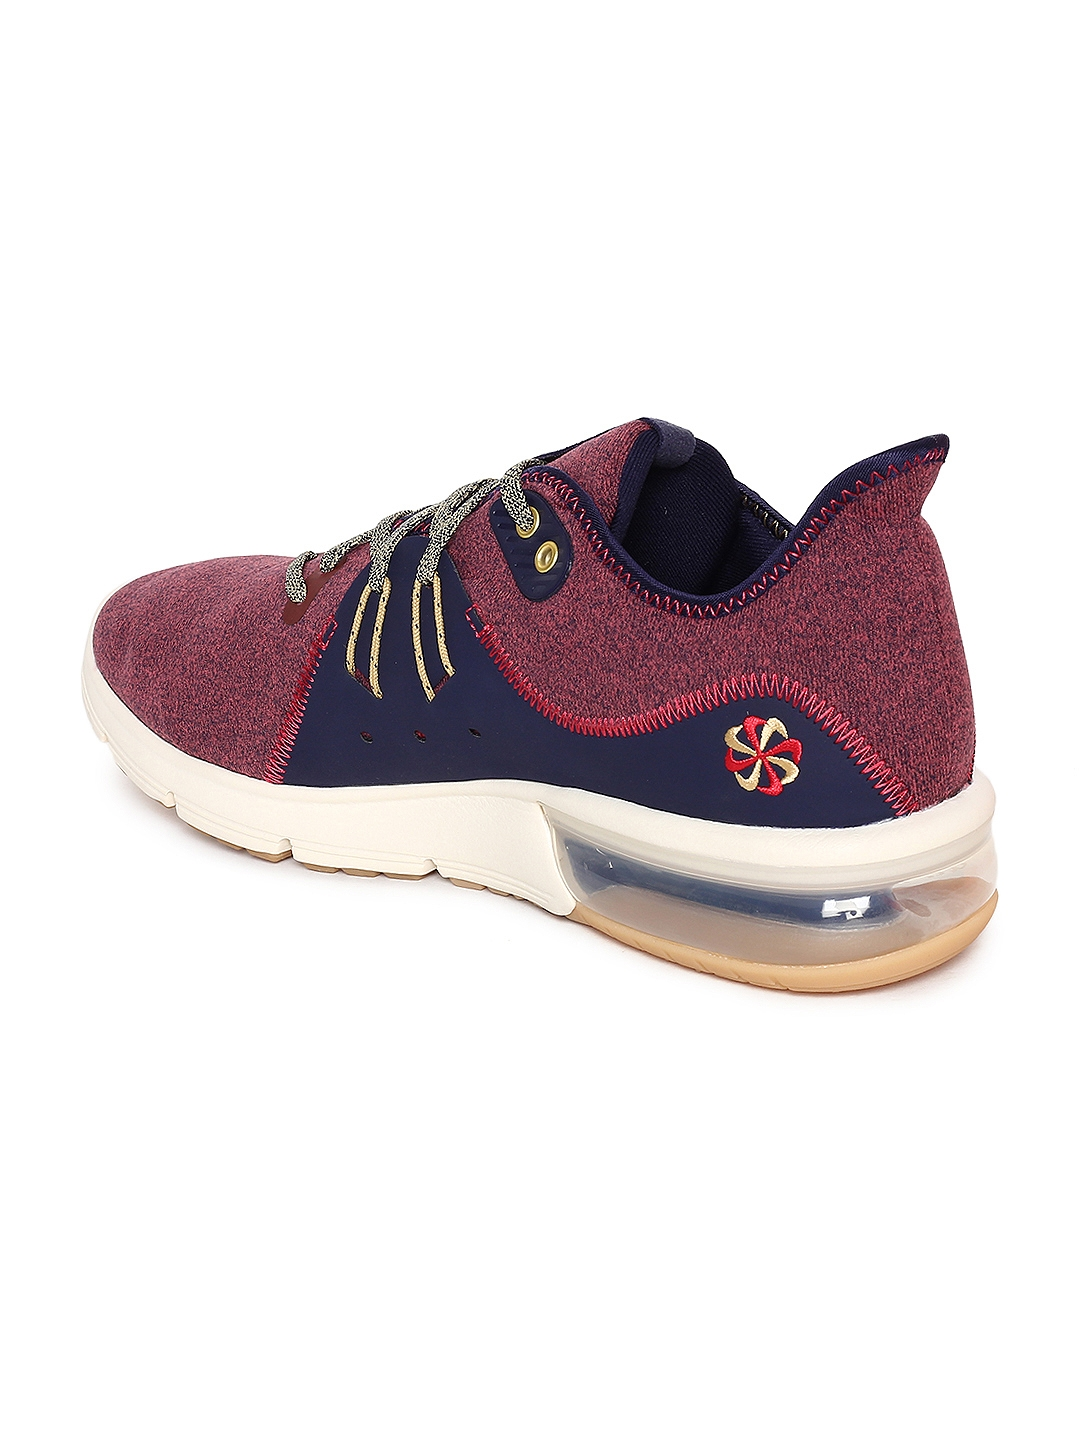 brand new 8bd91 9d770 Nike Men Maroon   Navy Air Max Sequent 3 PRM VST Running Shoes